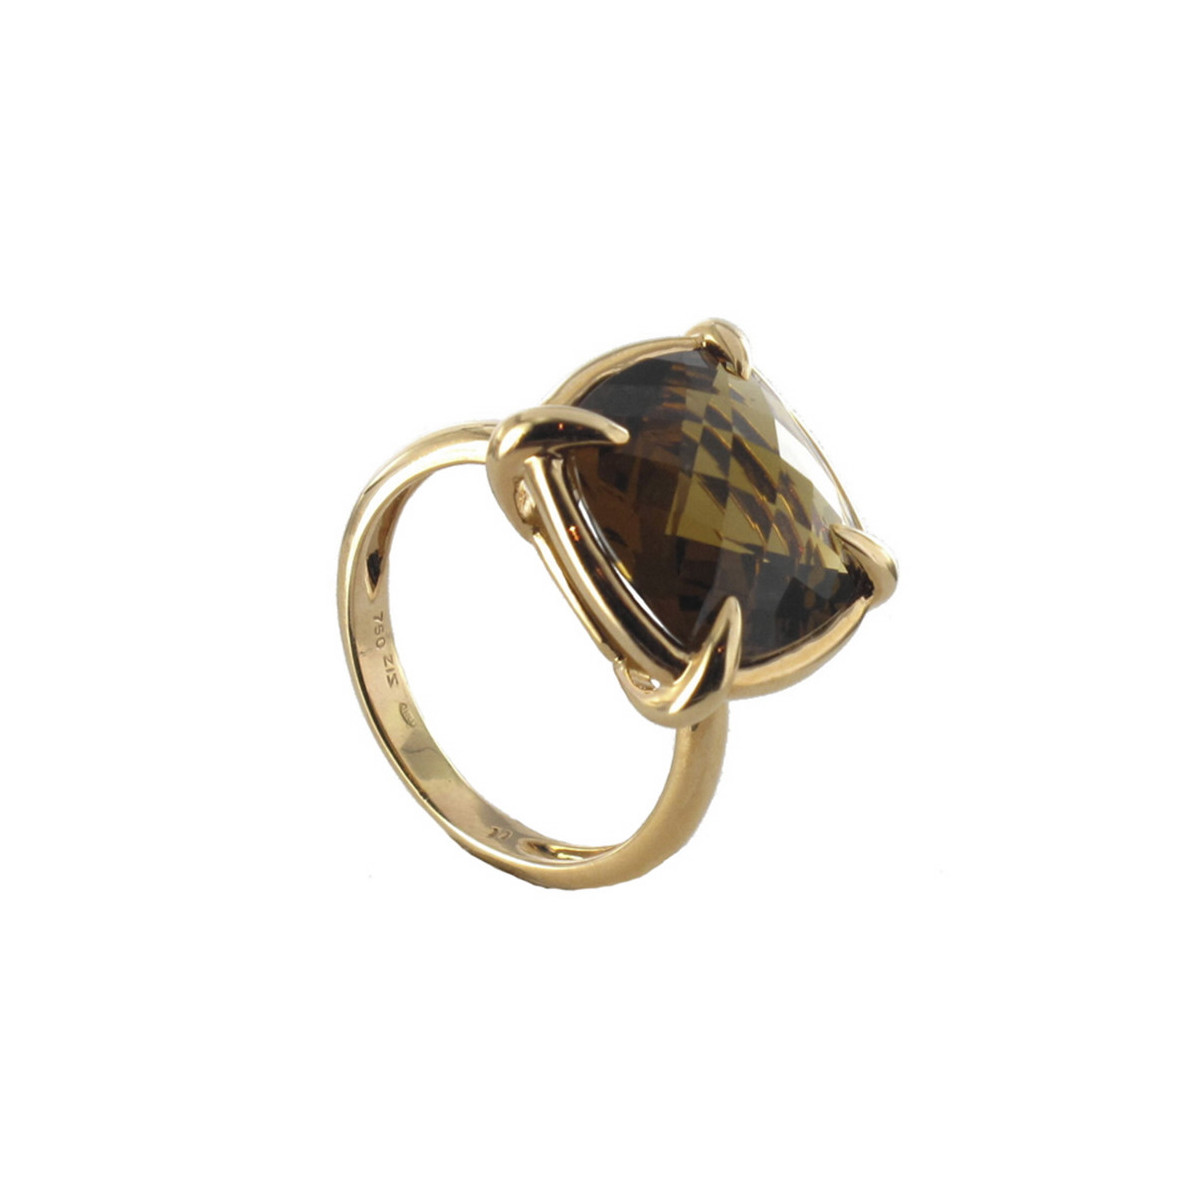 RING RING ROSE GOLD 18 CARATS QUARTZ BROWN